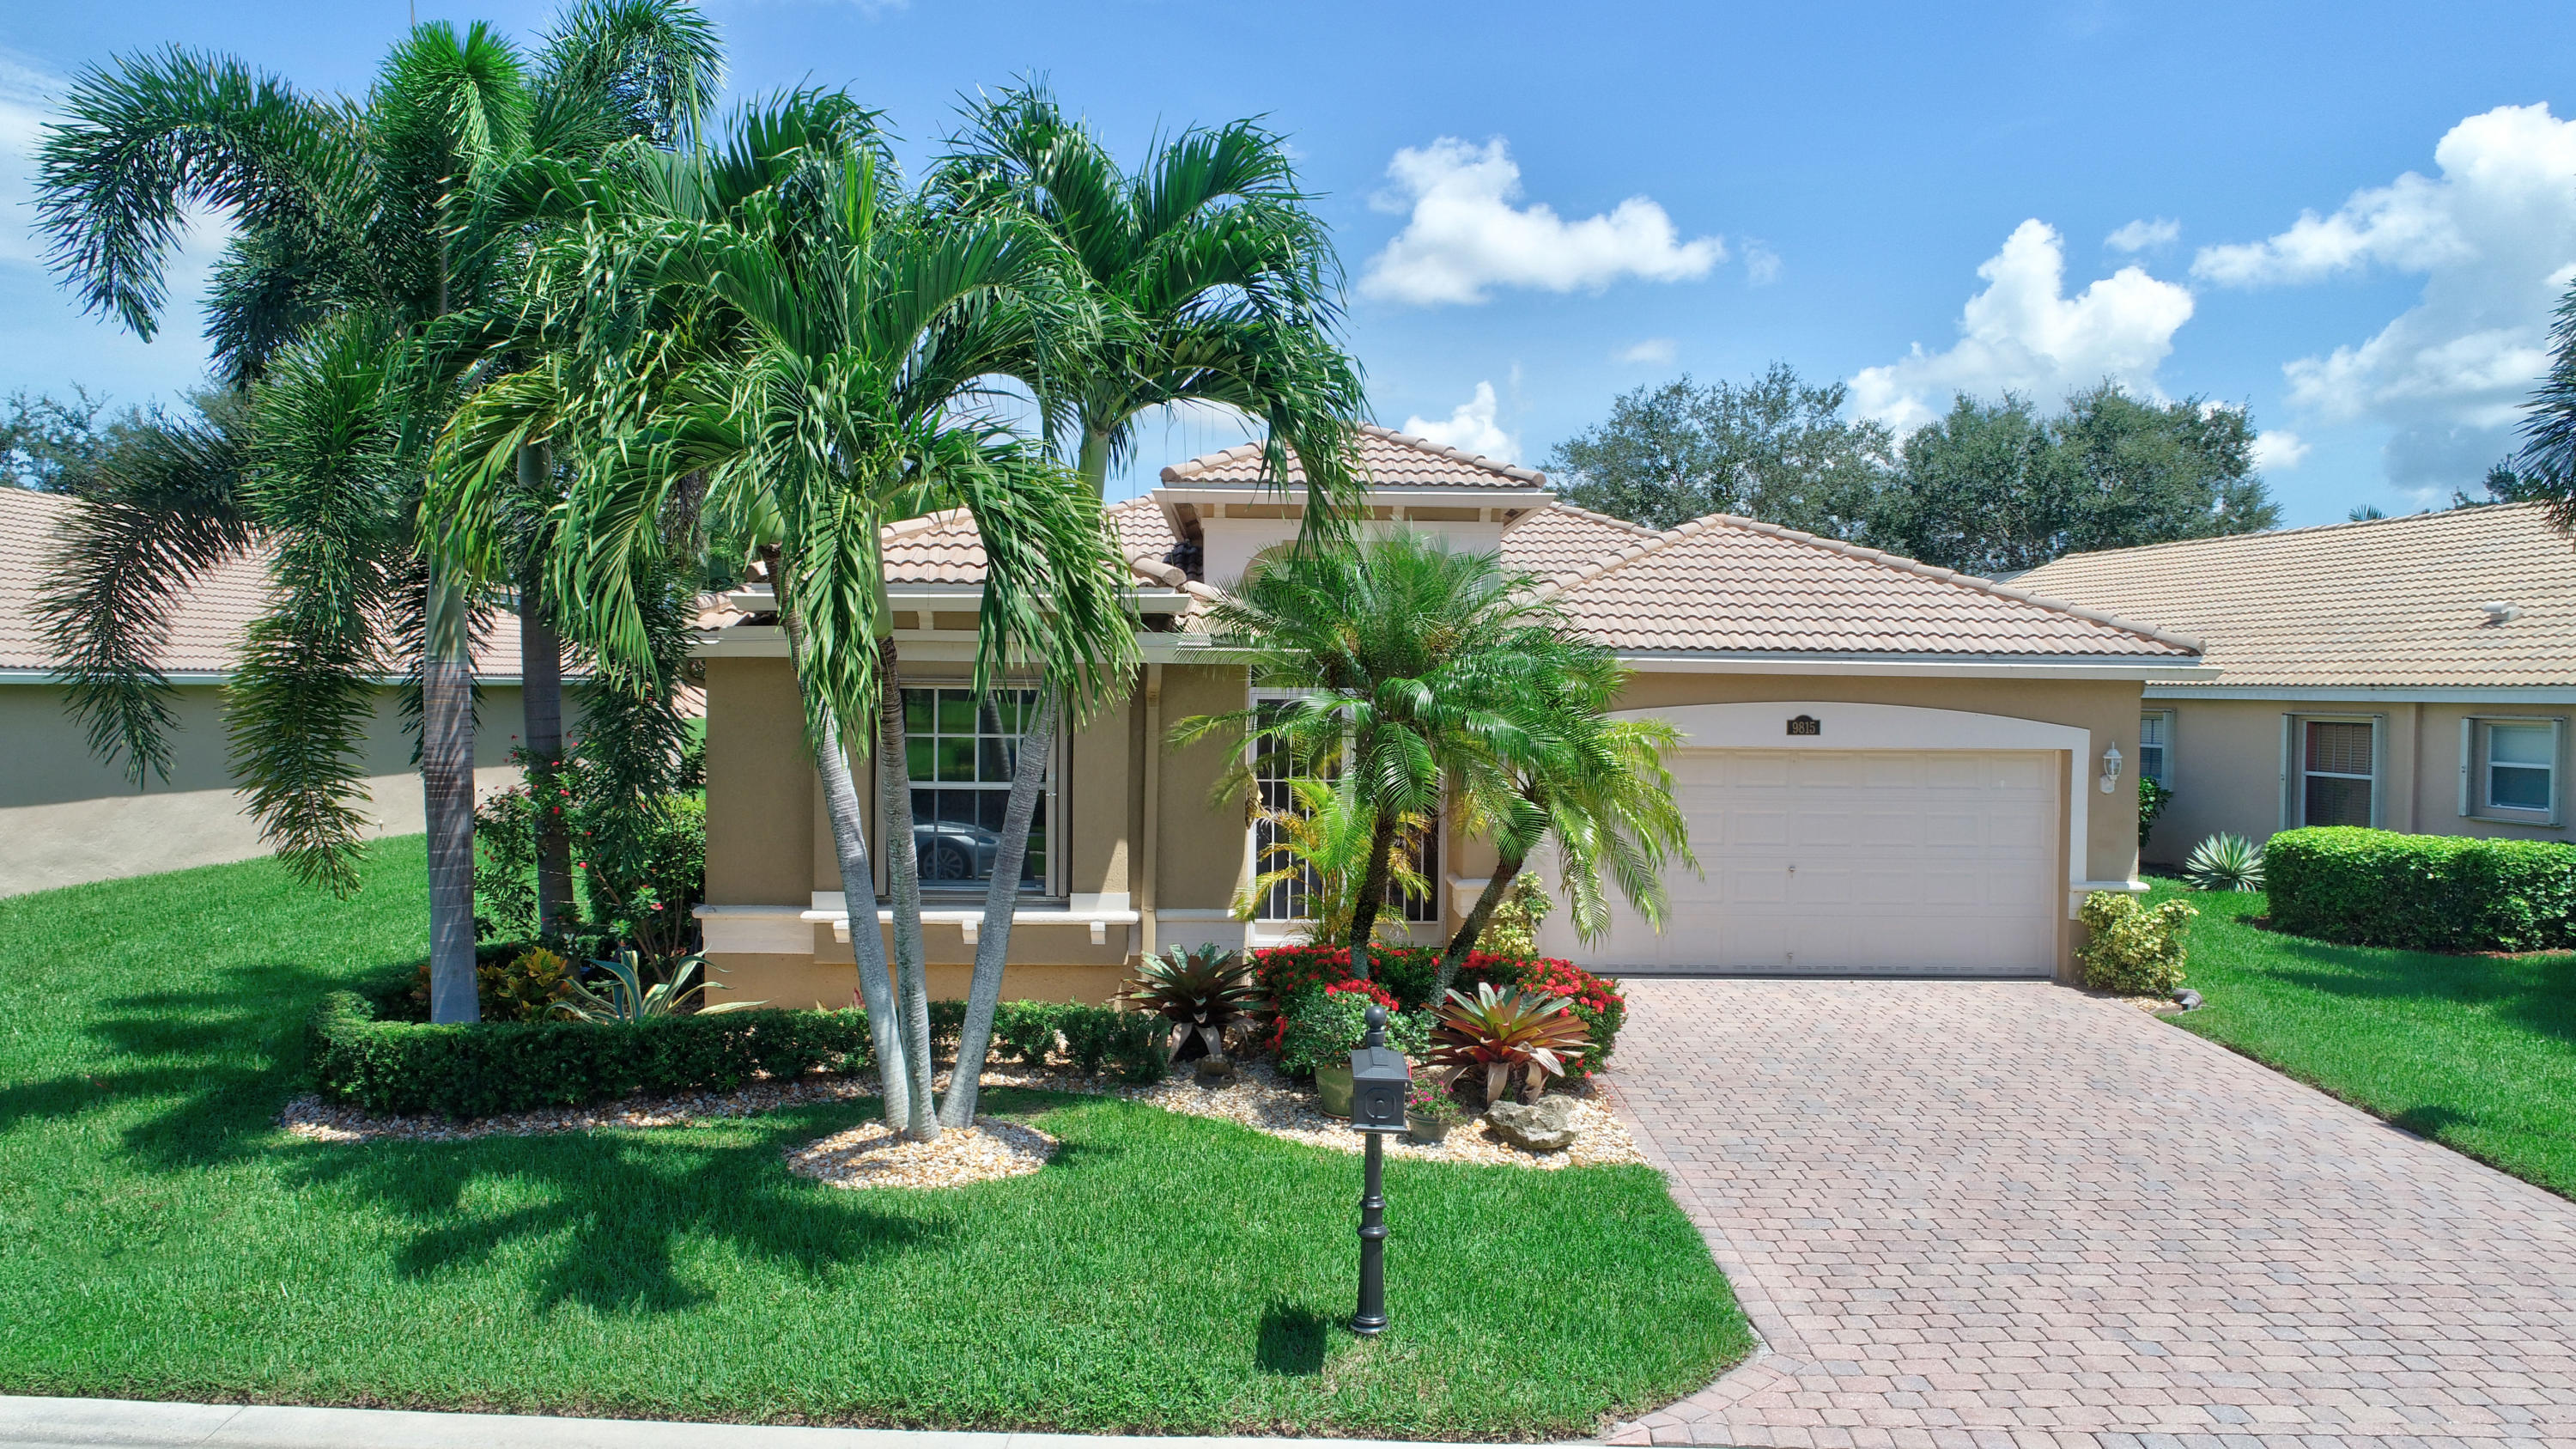 Home for sale in Bellaggio Lake Worth Florida